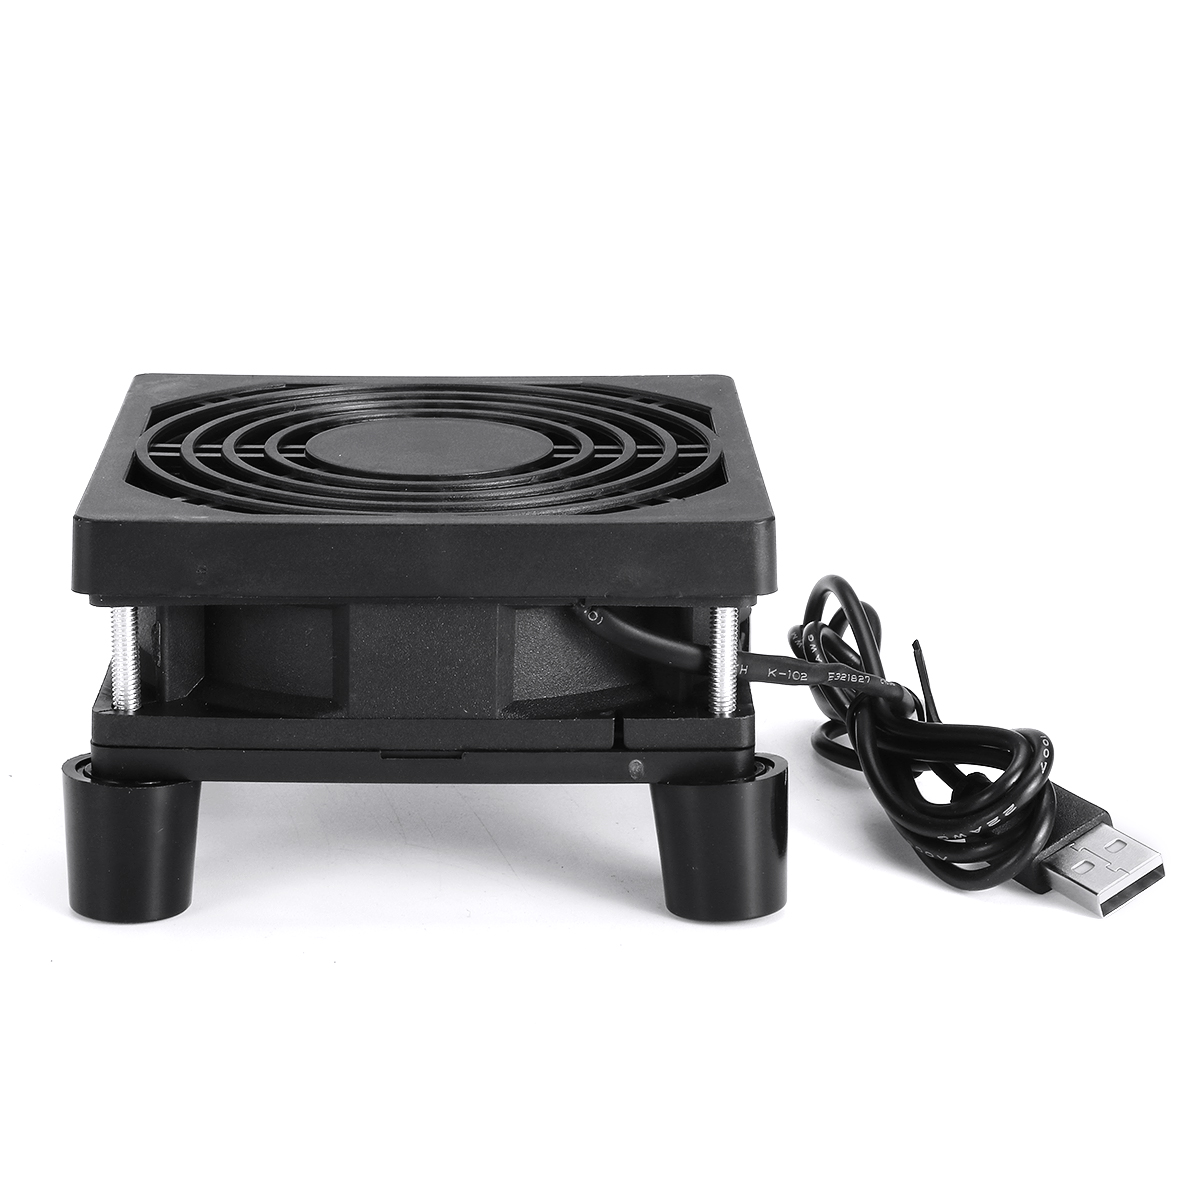 9CM Router Cooling Fan Rack 5V USB TV Box Notebook Cooling Rack With Foot Pad